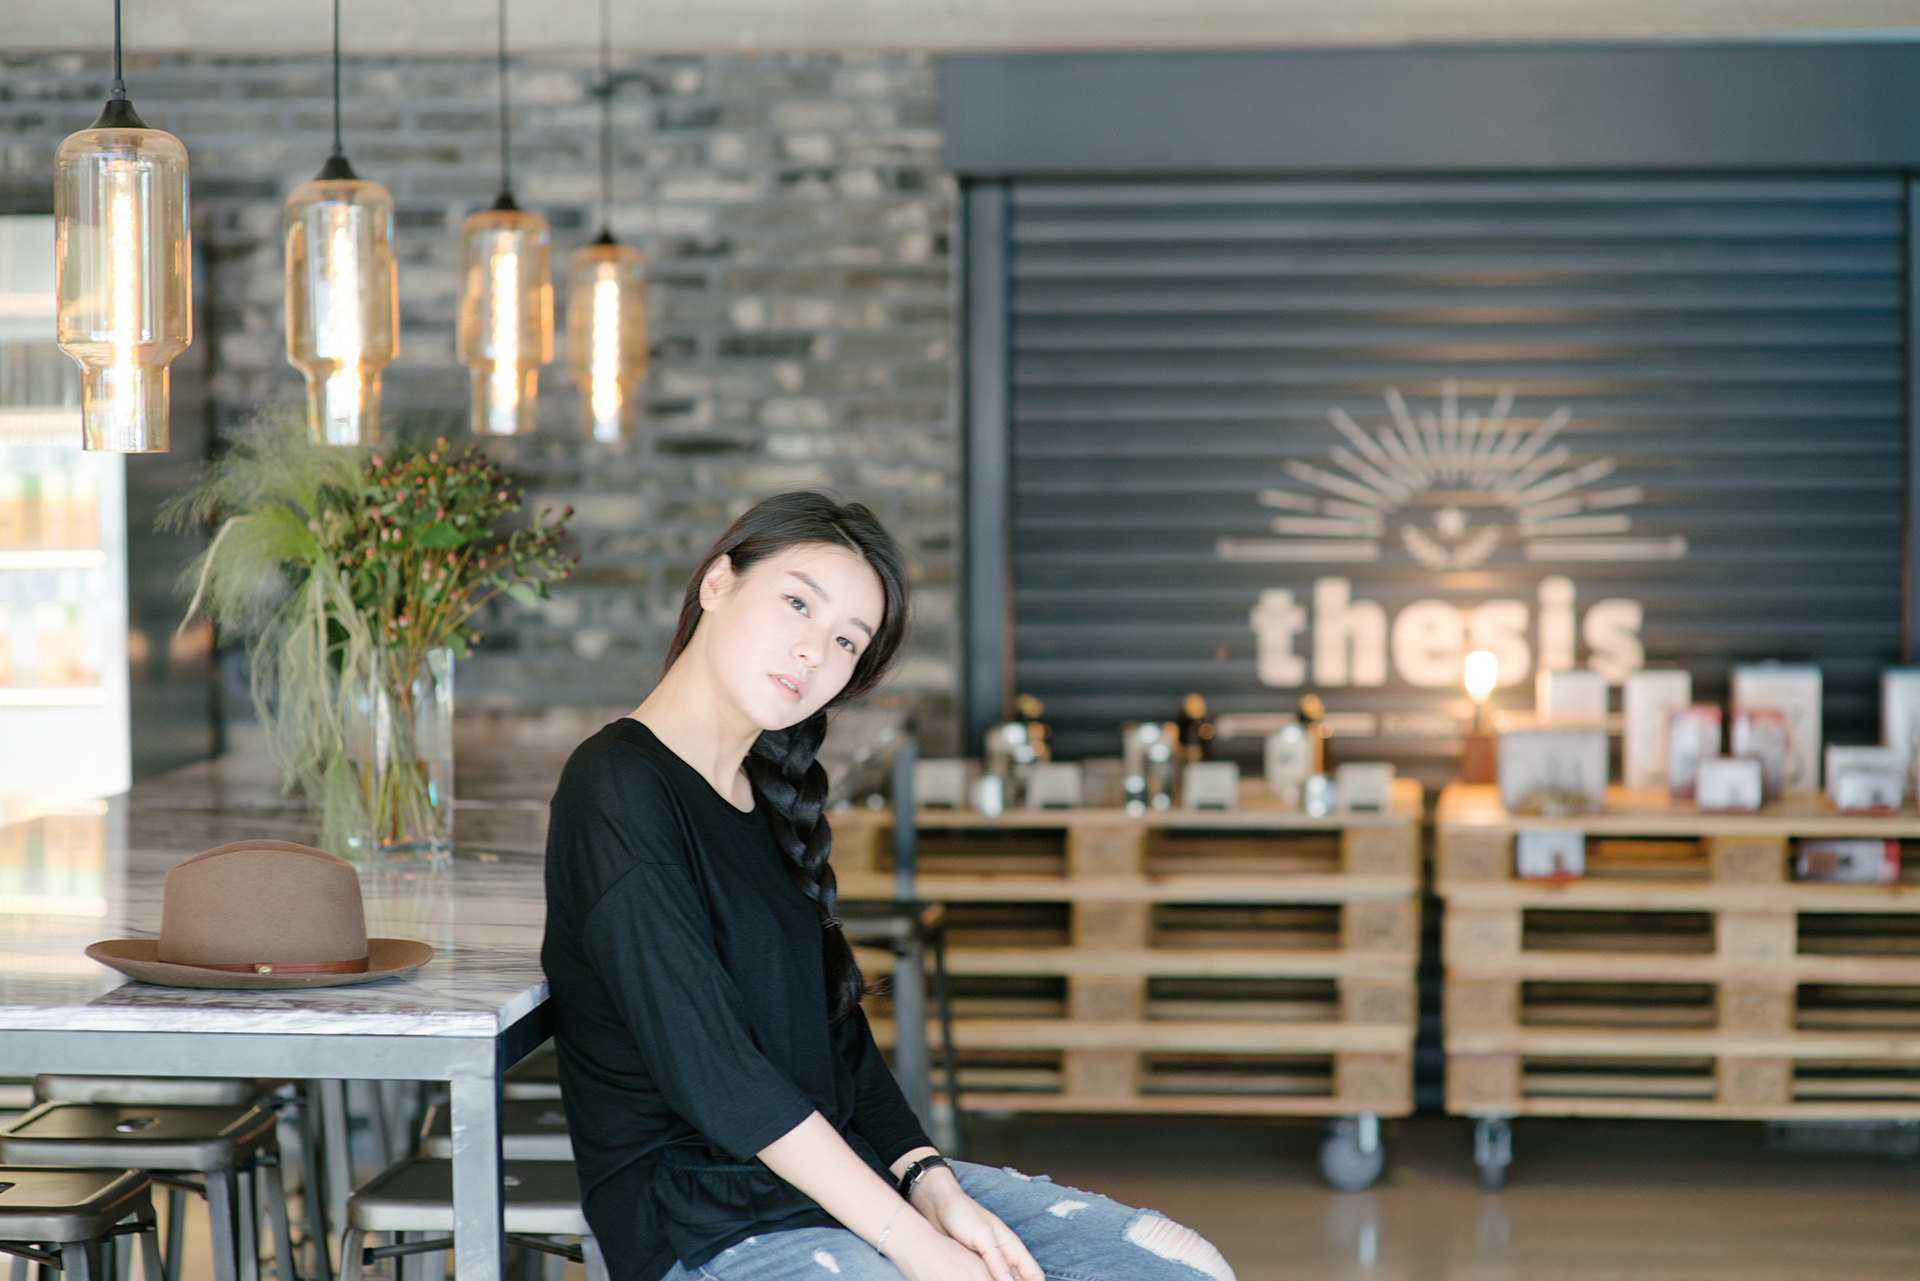 Korean model Jinhee Heo sitting in Thesis coffee shop